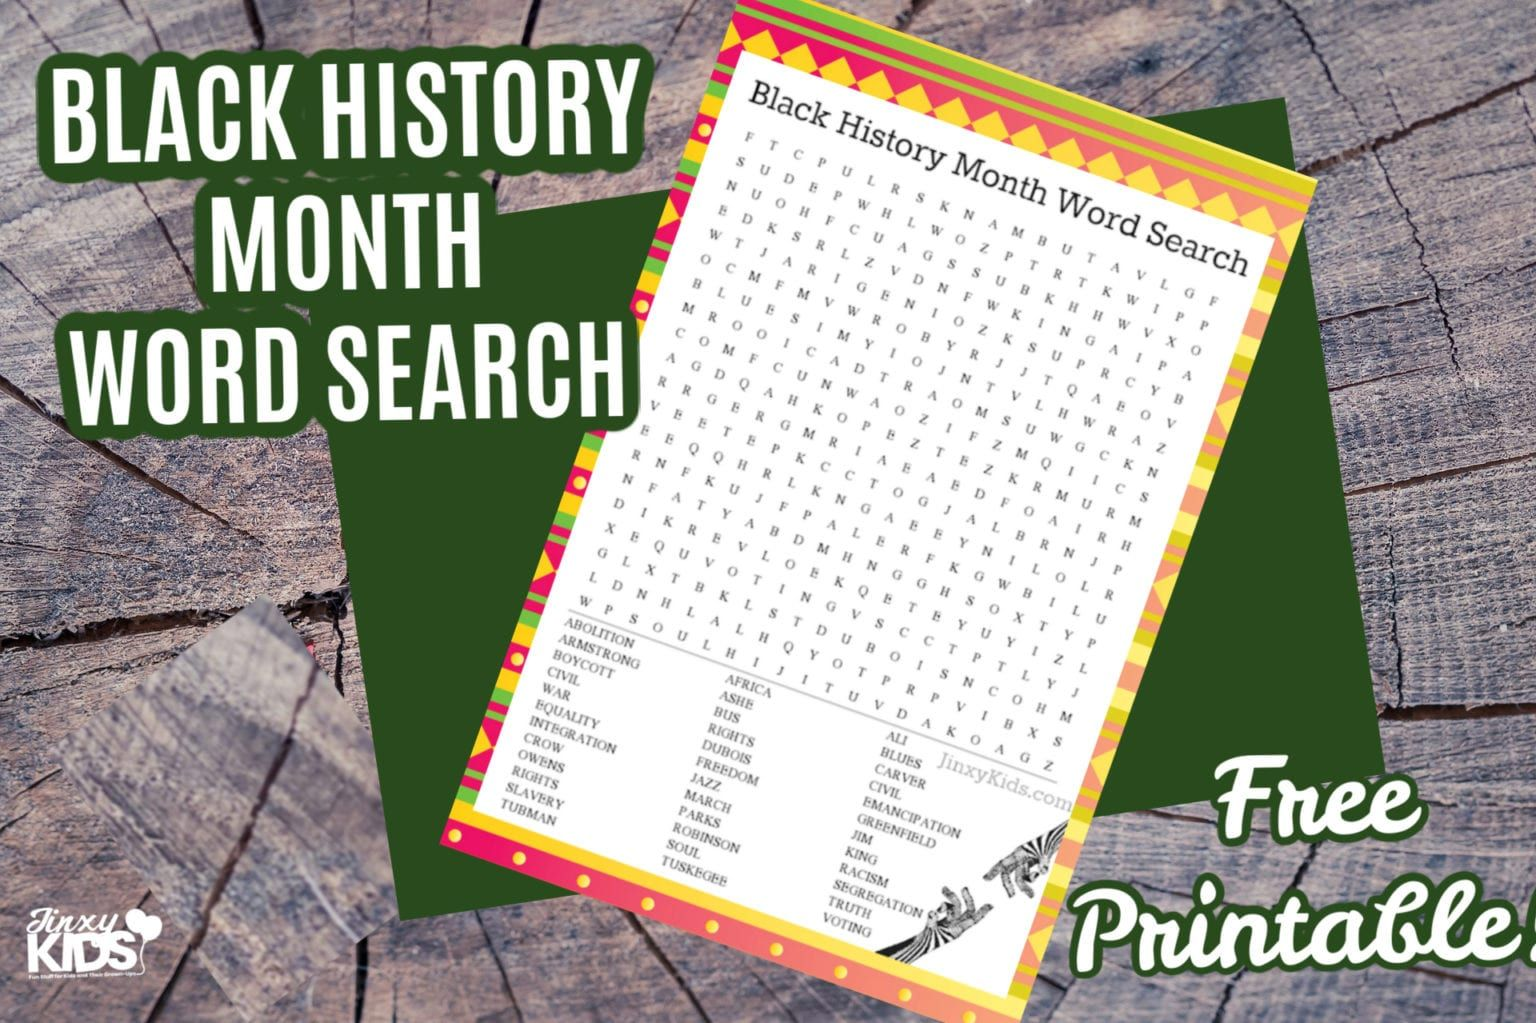 Free Printable Black History Month Word Search Puzzle In